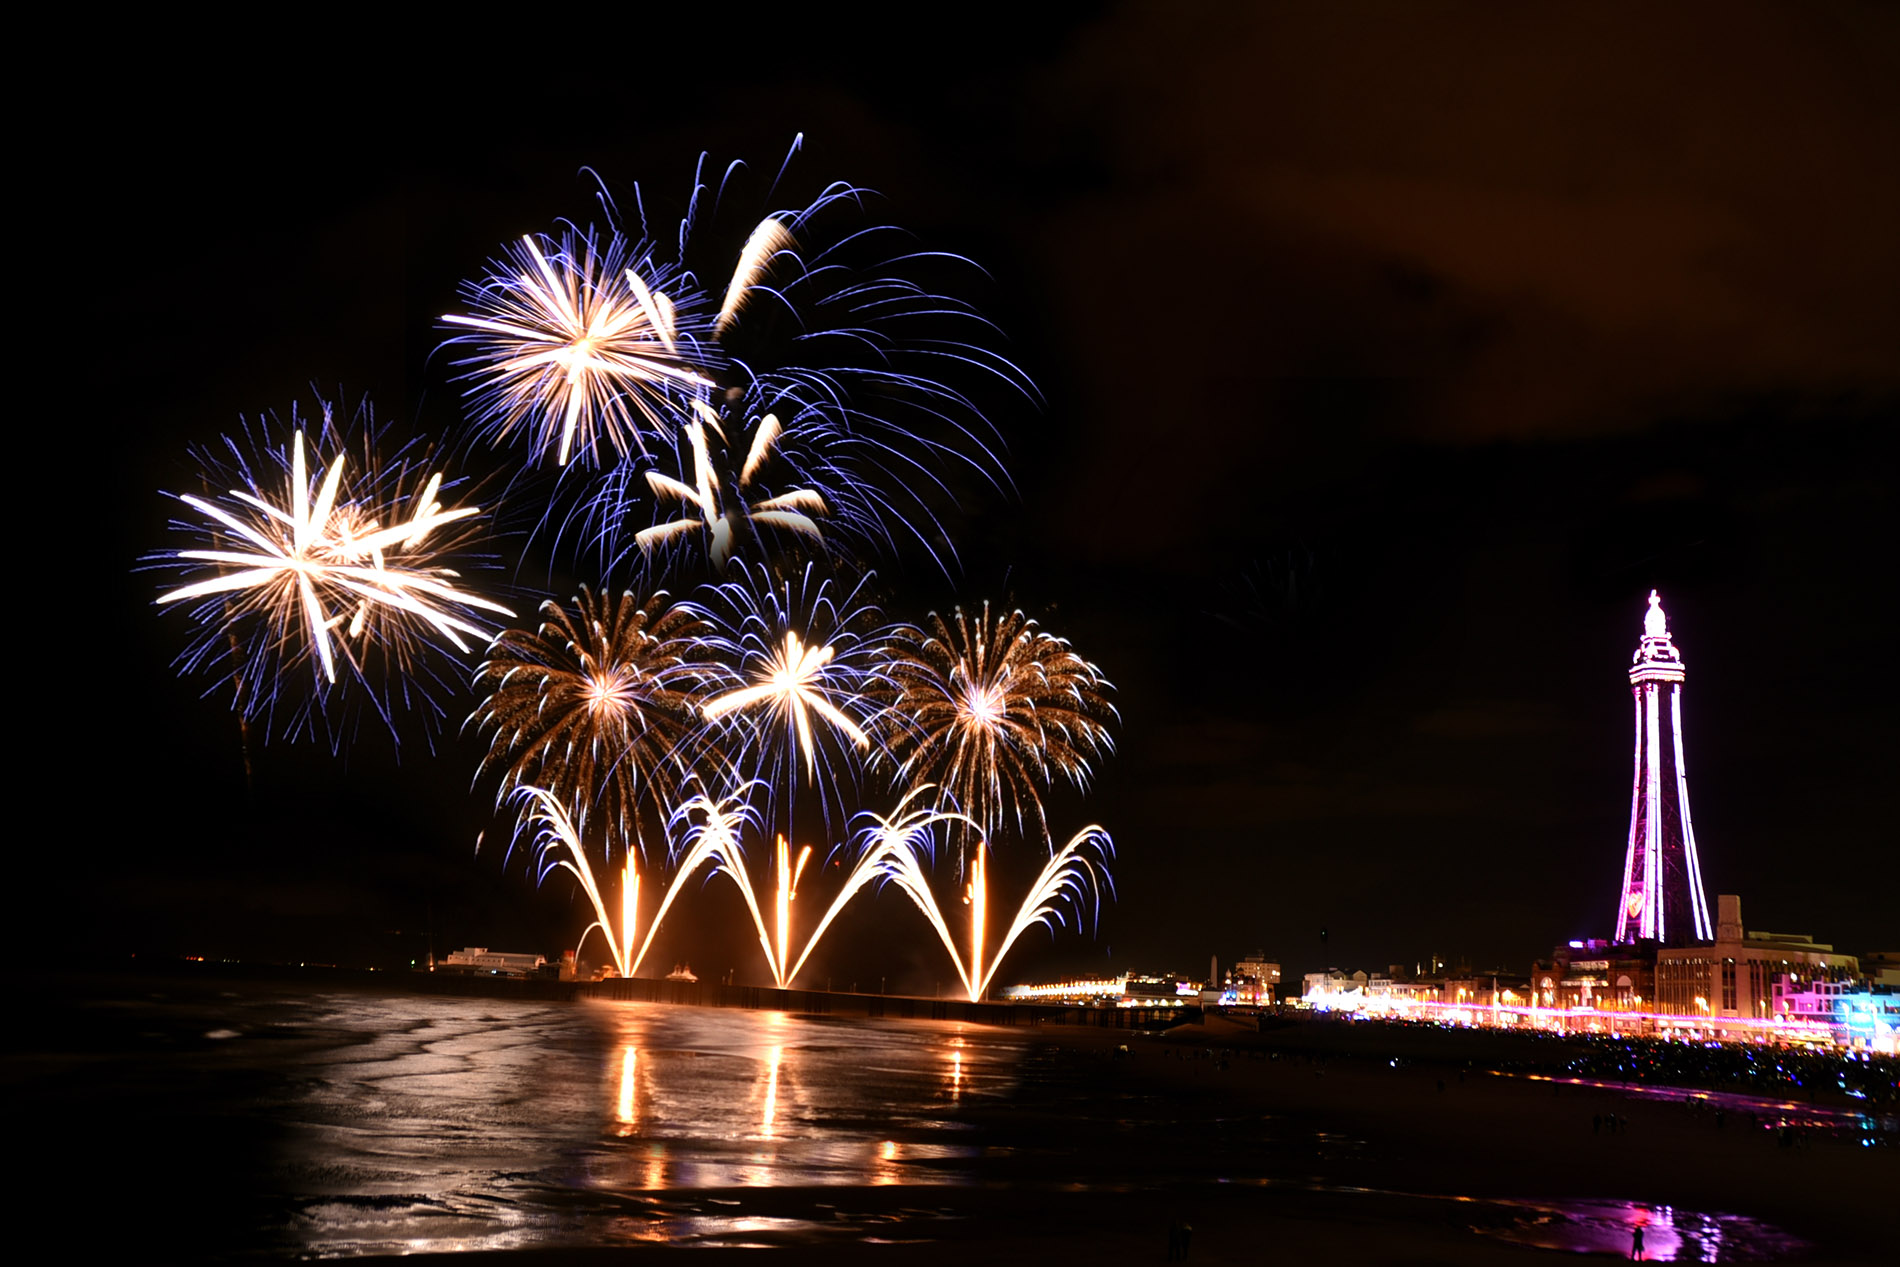 titanium-fireworks-gallery-blackpool-october-2016-4-1900px